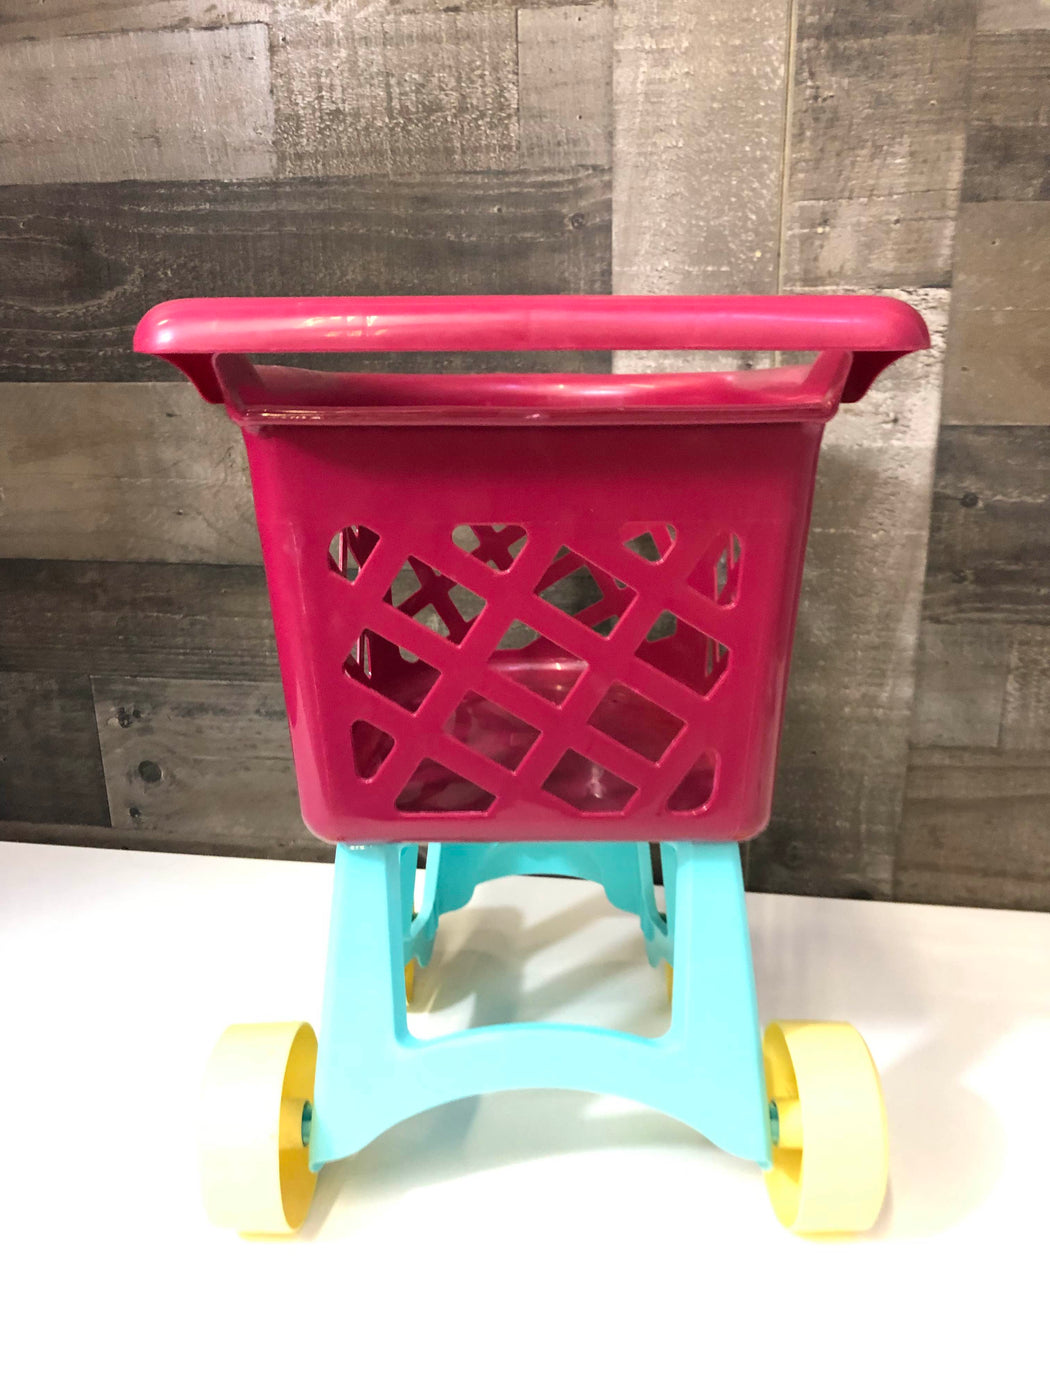 secondhand Battat Grocery Cart